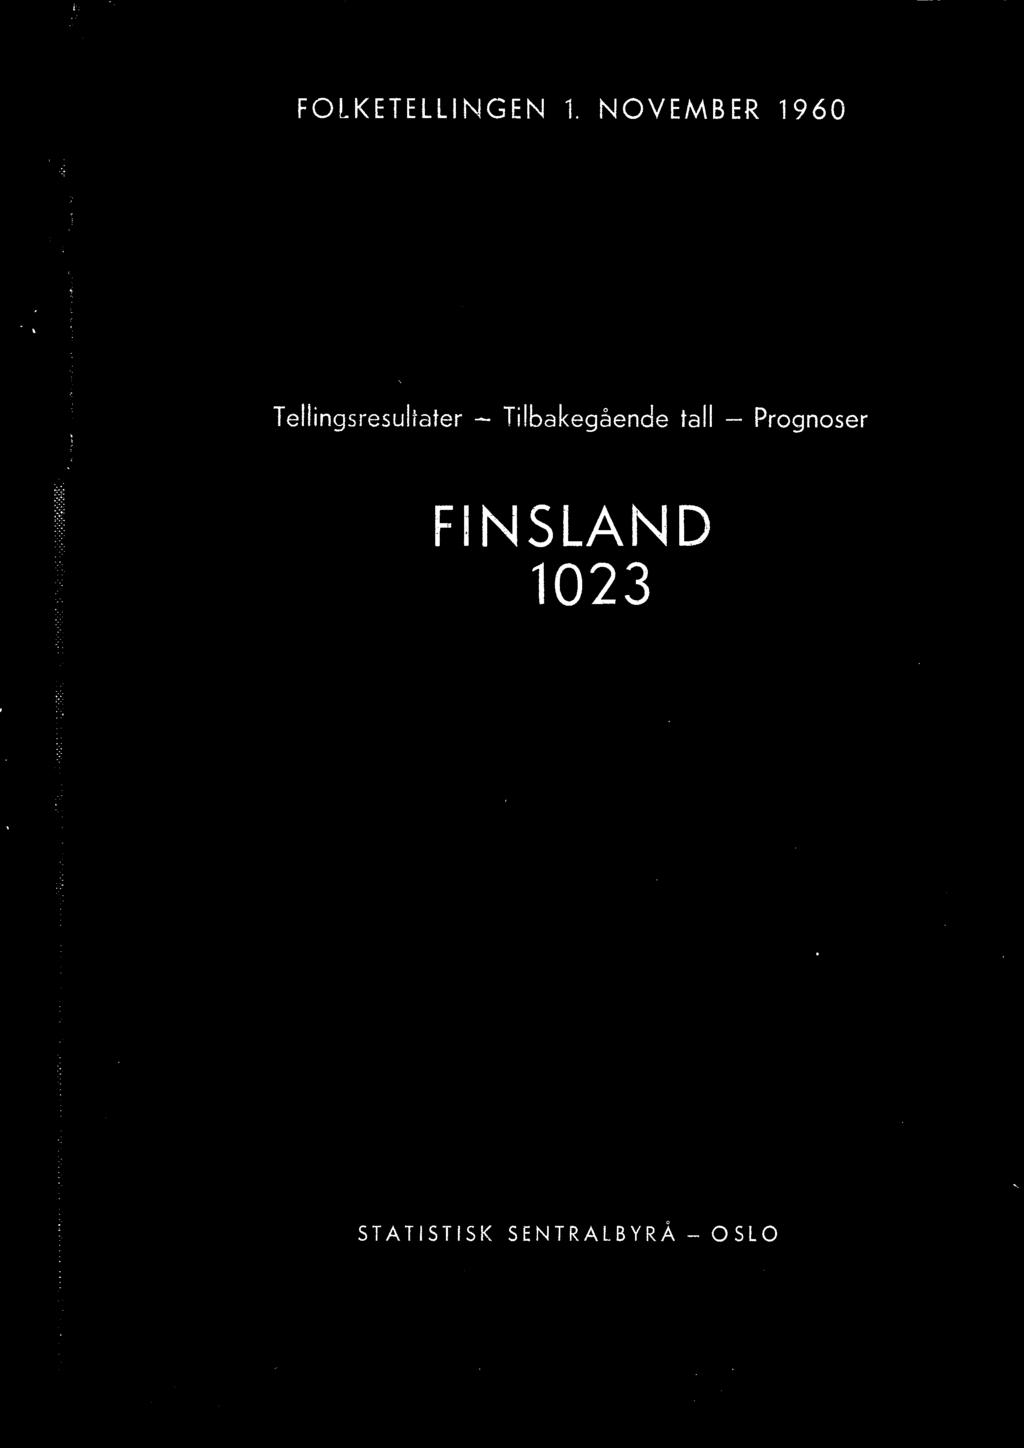 Prognoser FINSLAND